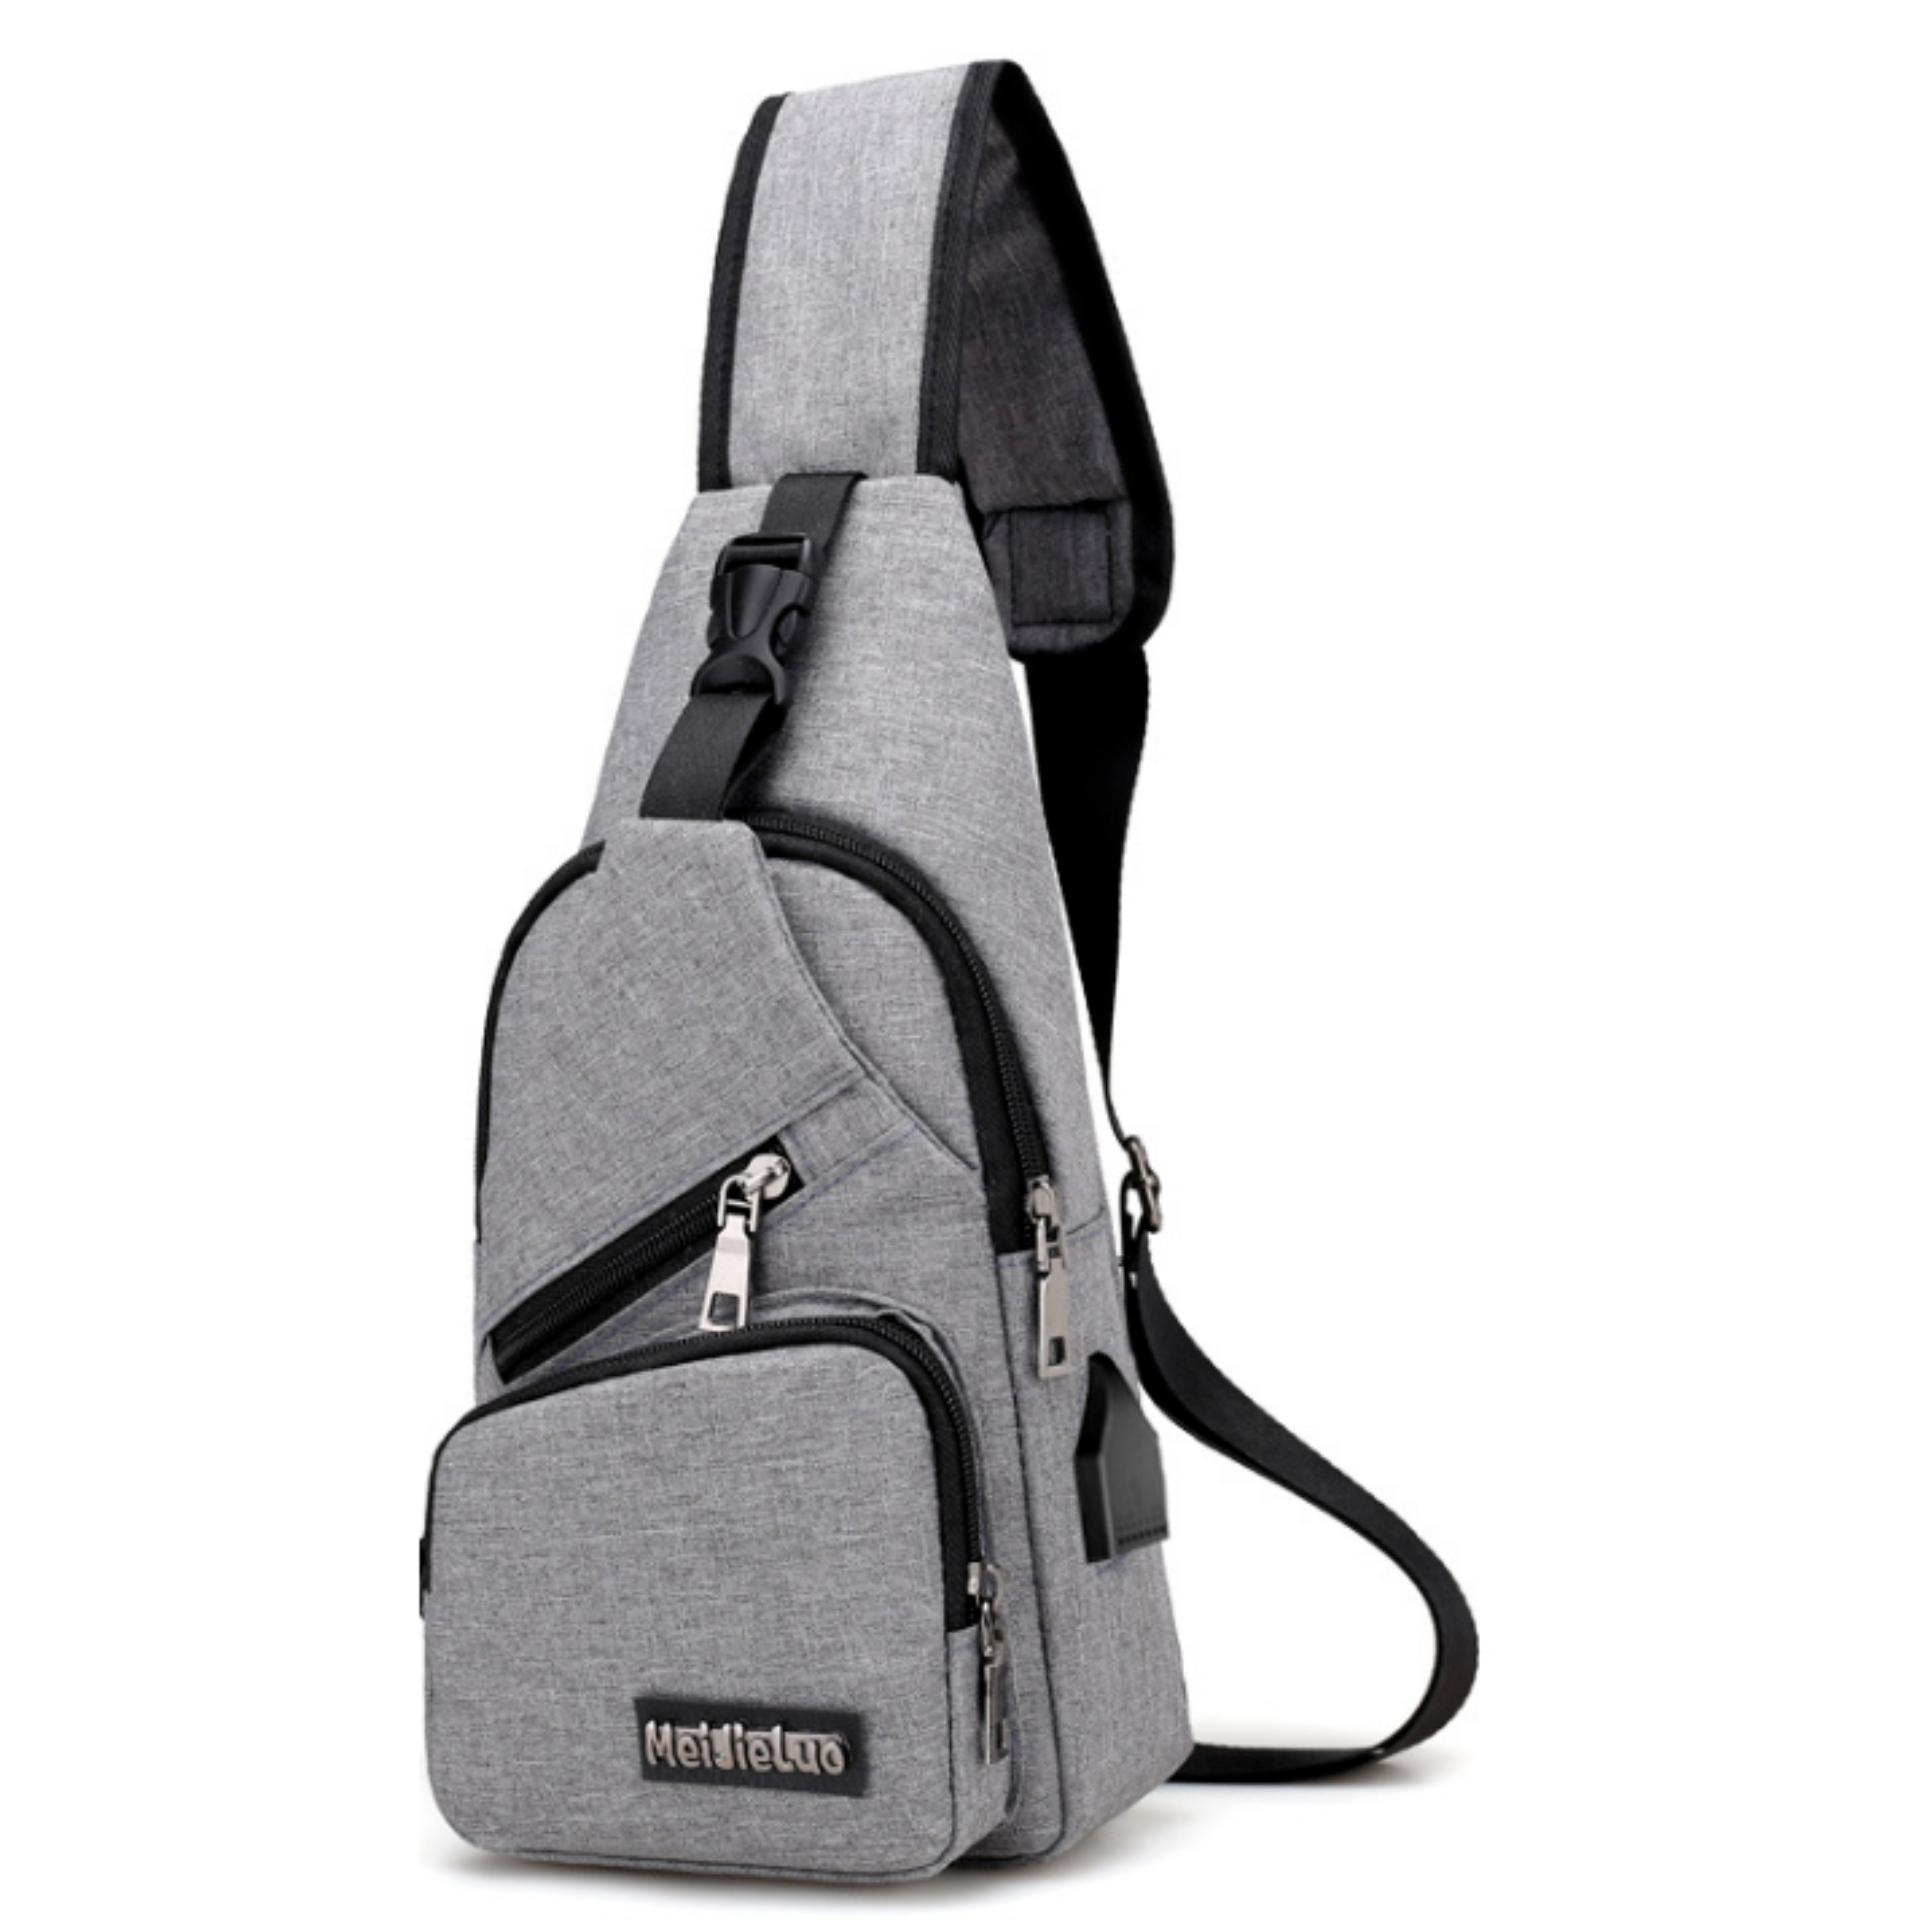 Fitur Tas Selempang Sling Bag Anti Maling Cross Body Non Usb Charger Thief Water Proof Smart Crossbody With Support